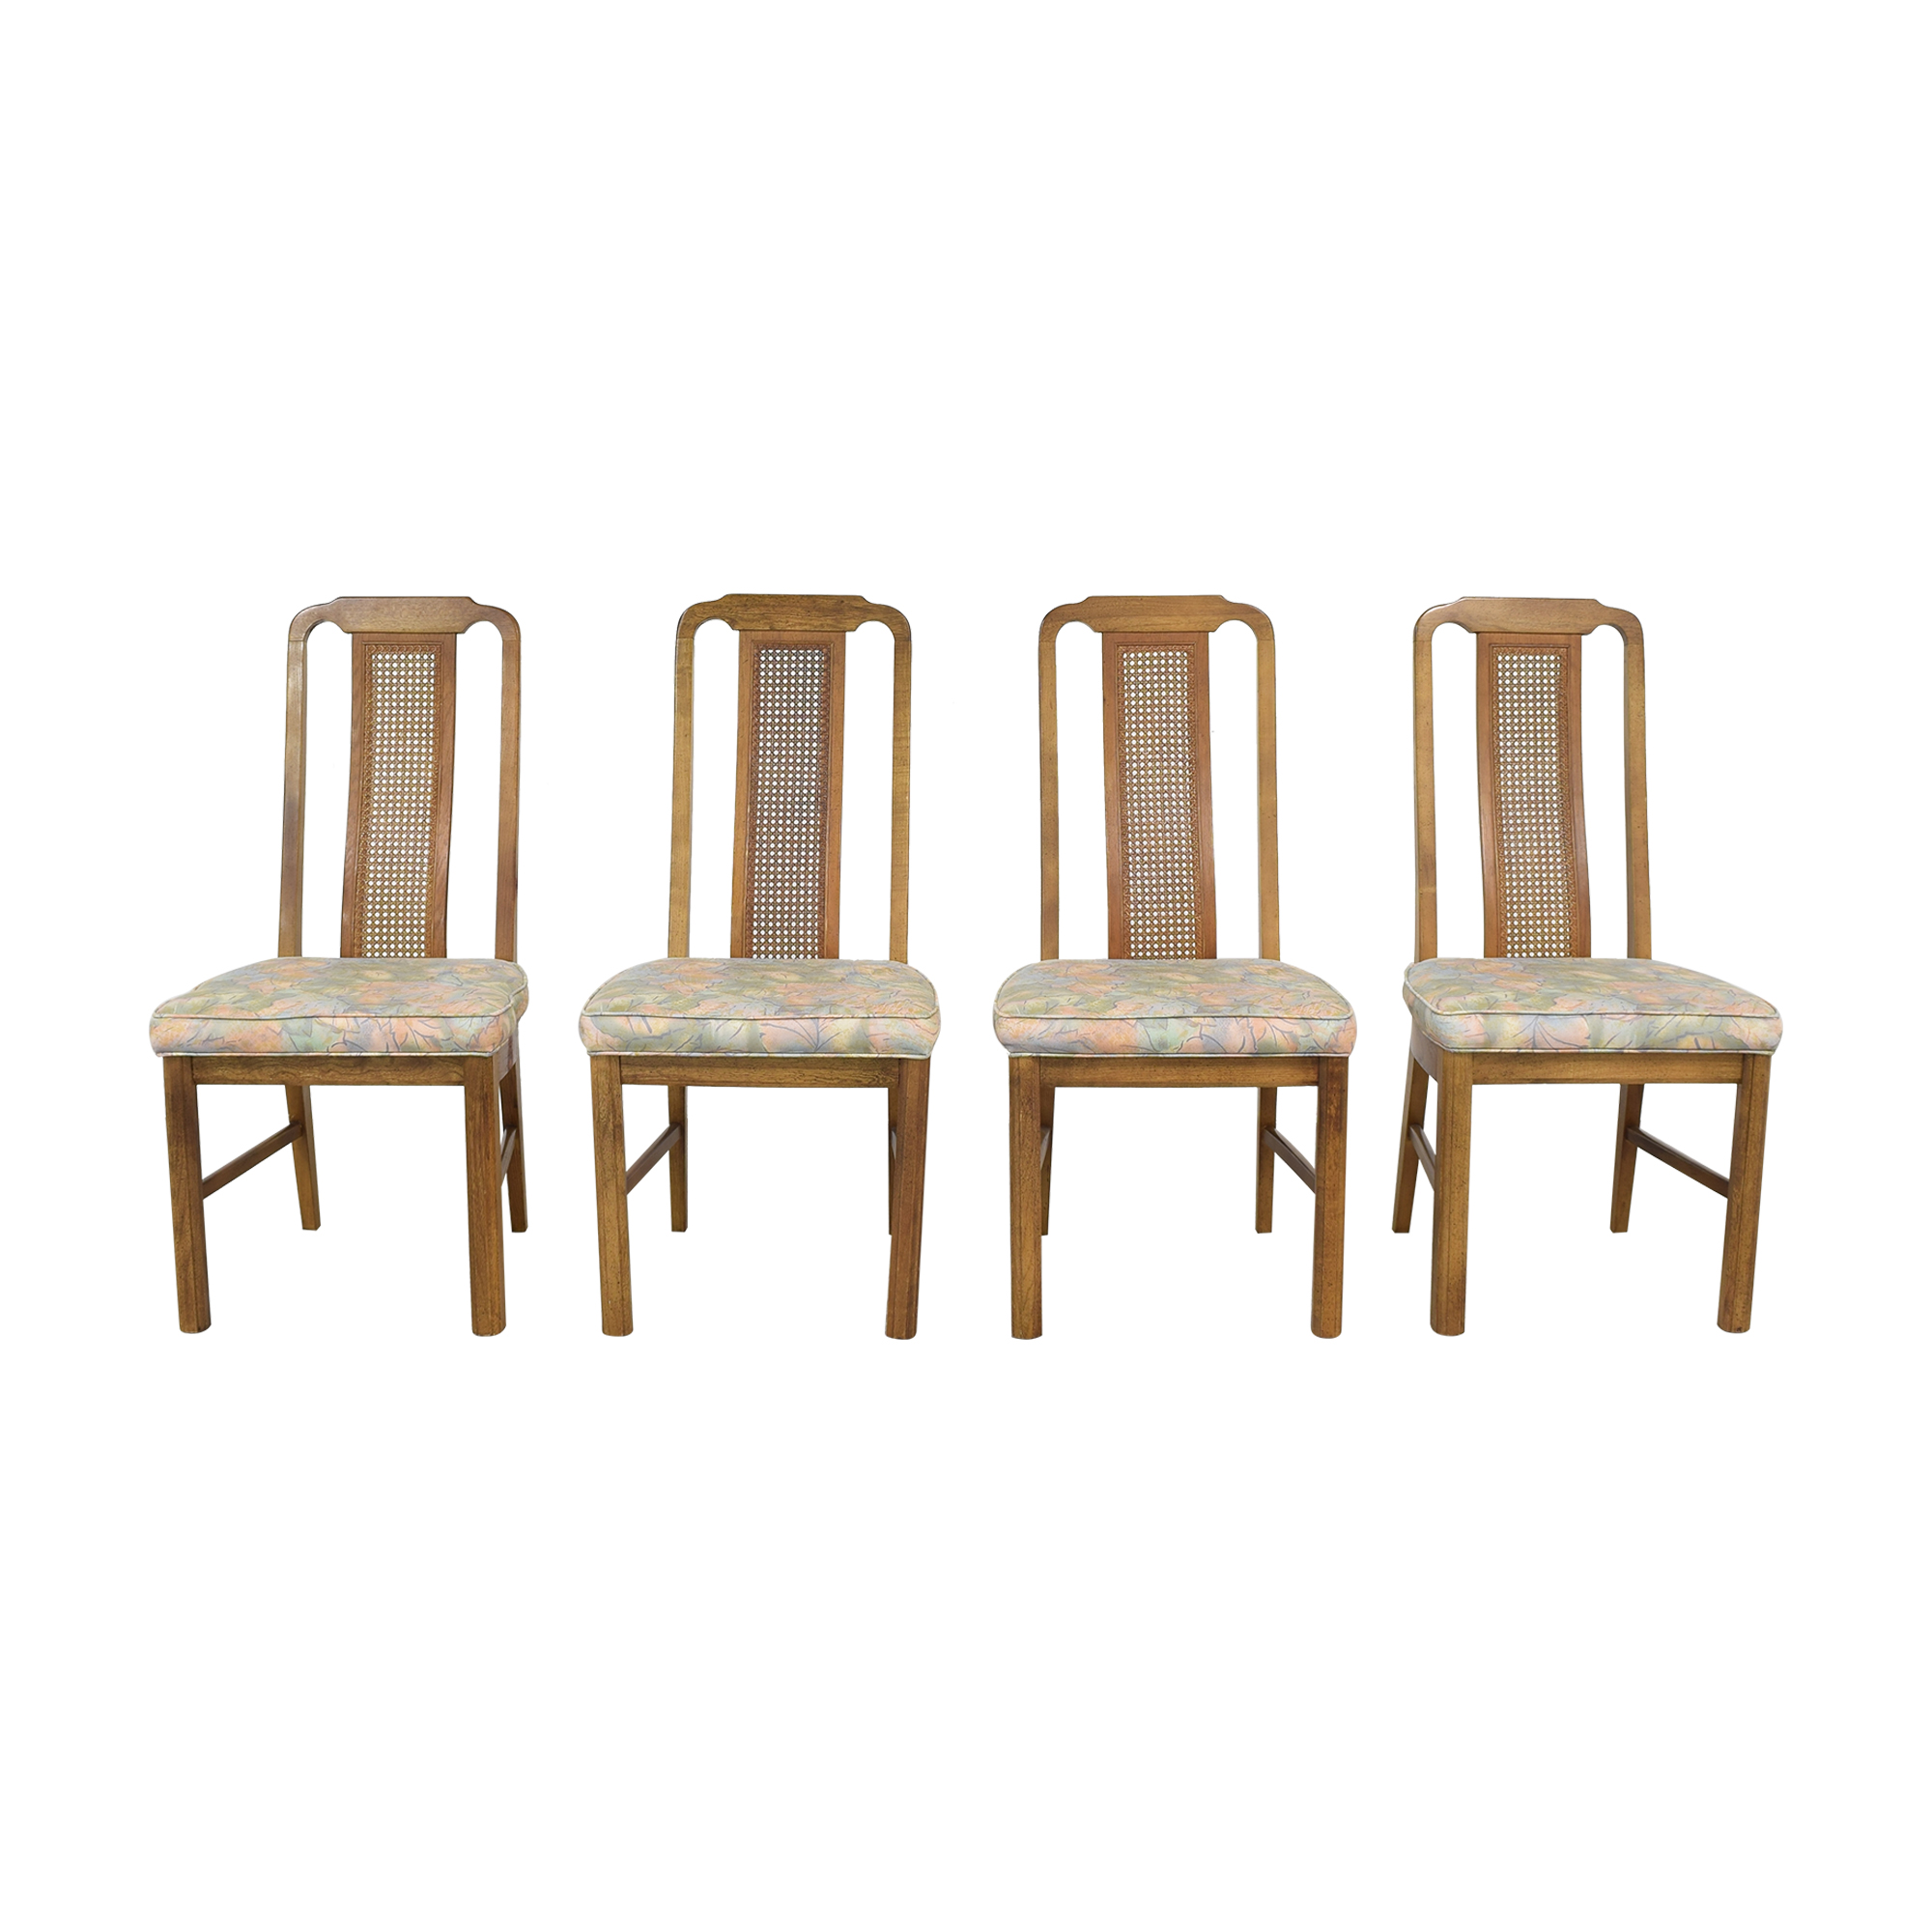 Vintage Dining Chairs ma